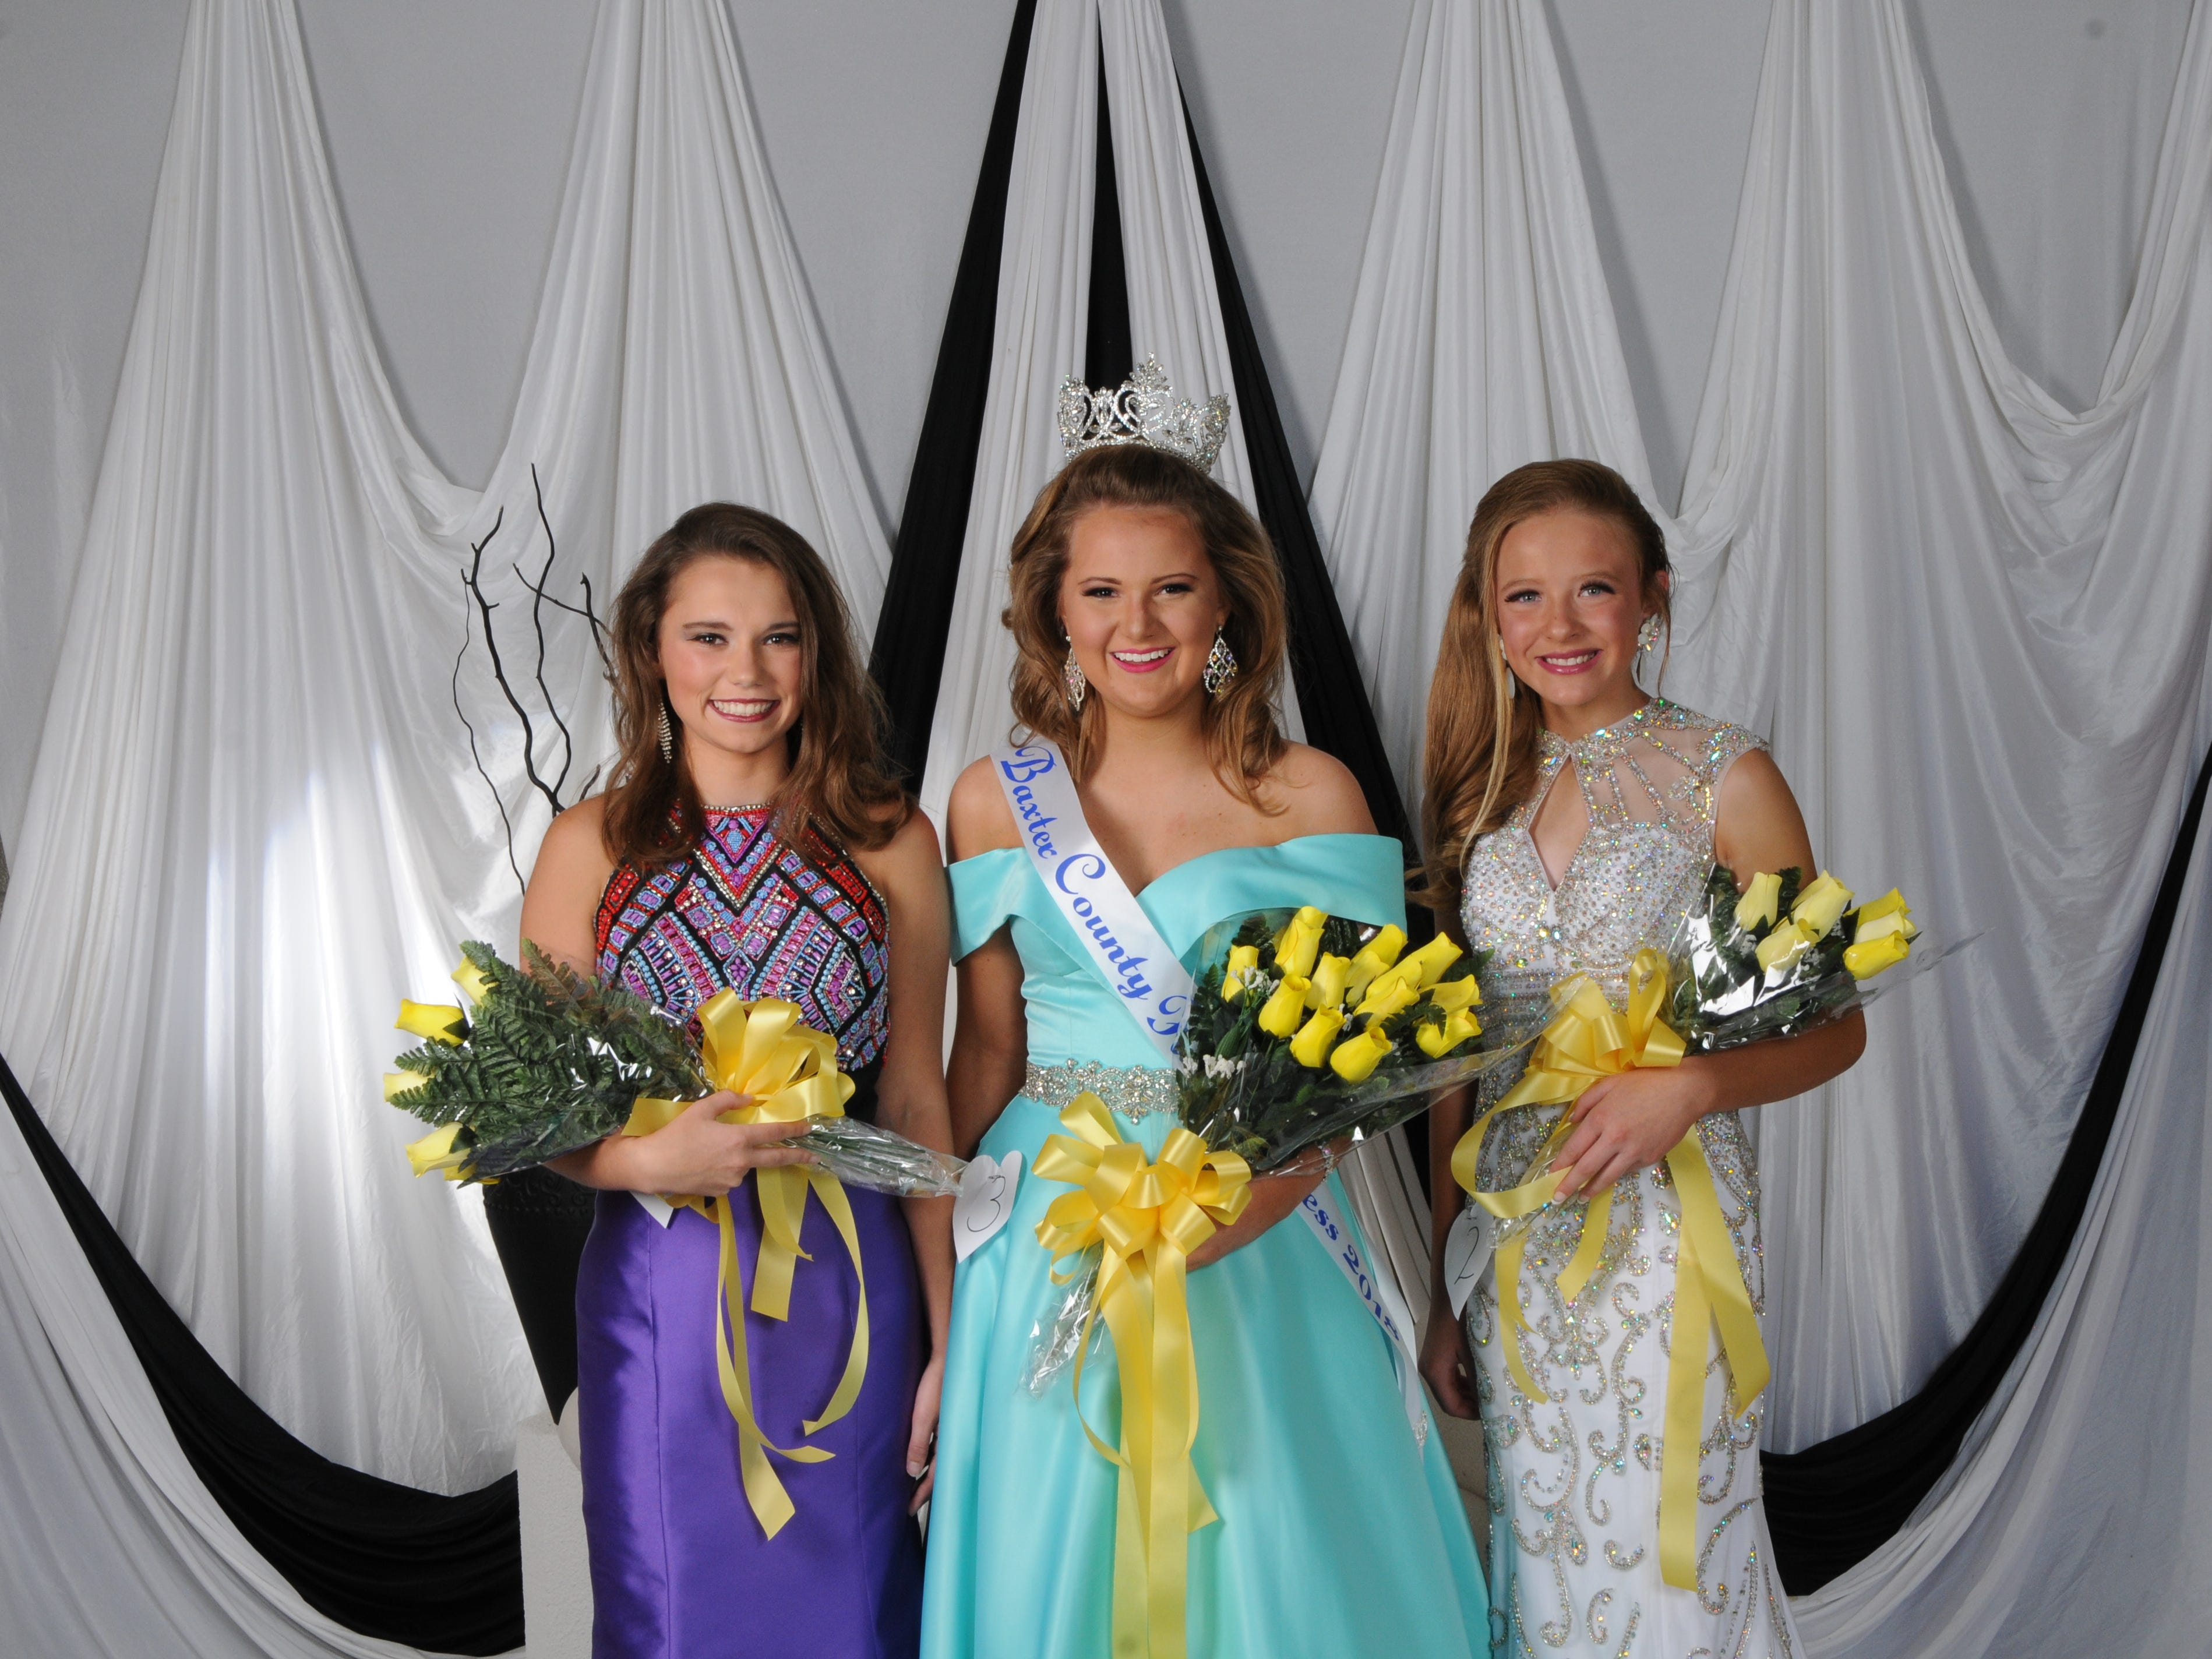 McKenzie Paden (center), daughter of Matt and Michelle Paden of Mountain Home, was named Baxter County Fair at the annual Baxter County Fair Pageant on Saturday at Dunbar Auditorium. McKenzie Tolbert (right), daughter of Donny and Melissa Tolbert of Jordan, was named first alternate; and Brionna Wescoat (left), daughter of Jay and Jill Wescoat of Mountain Home, was named second alternate.